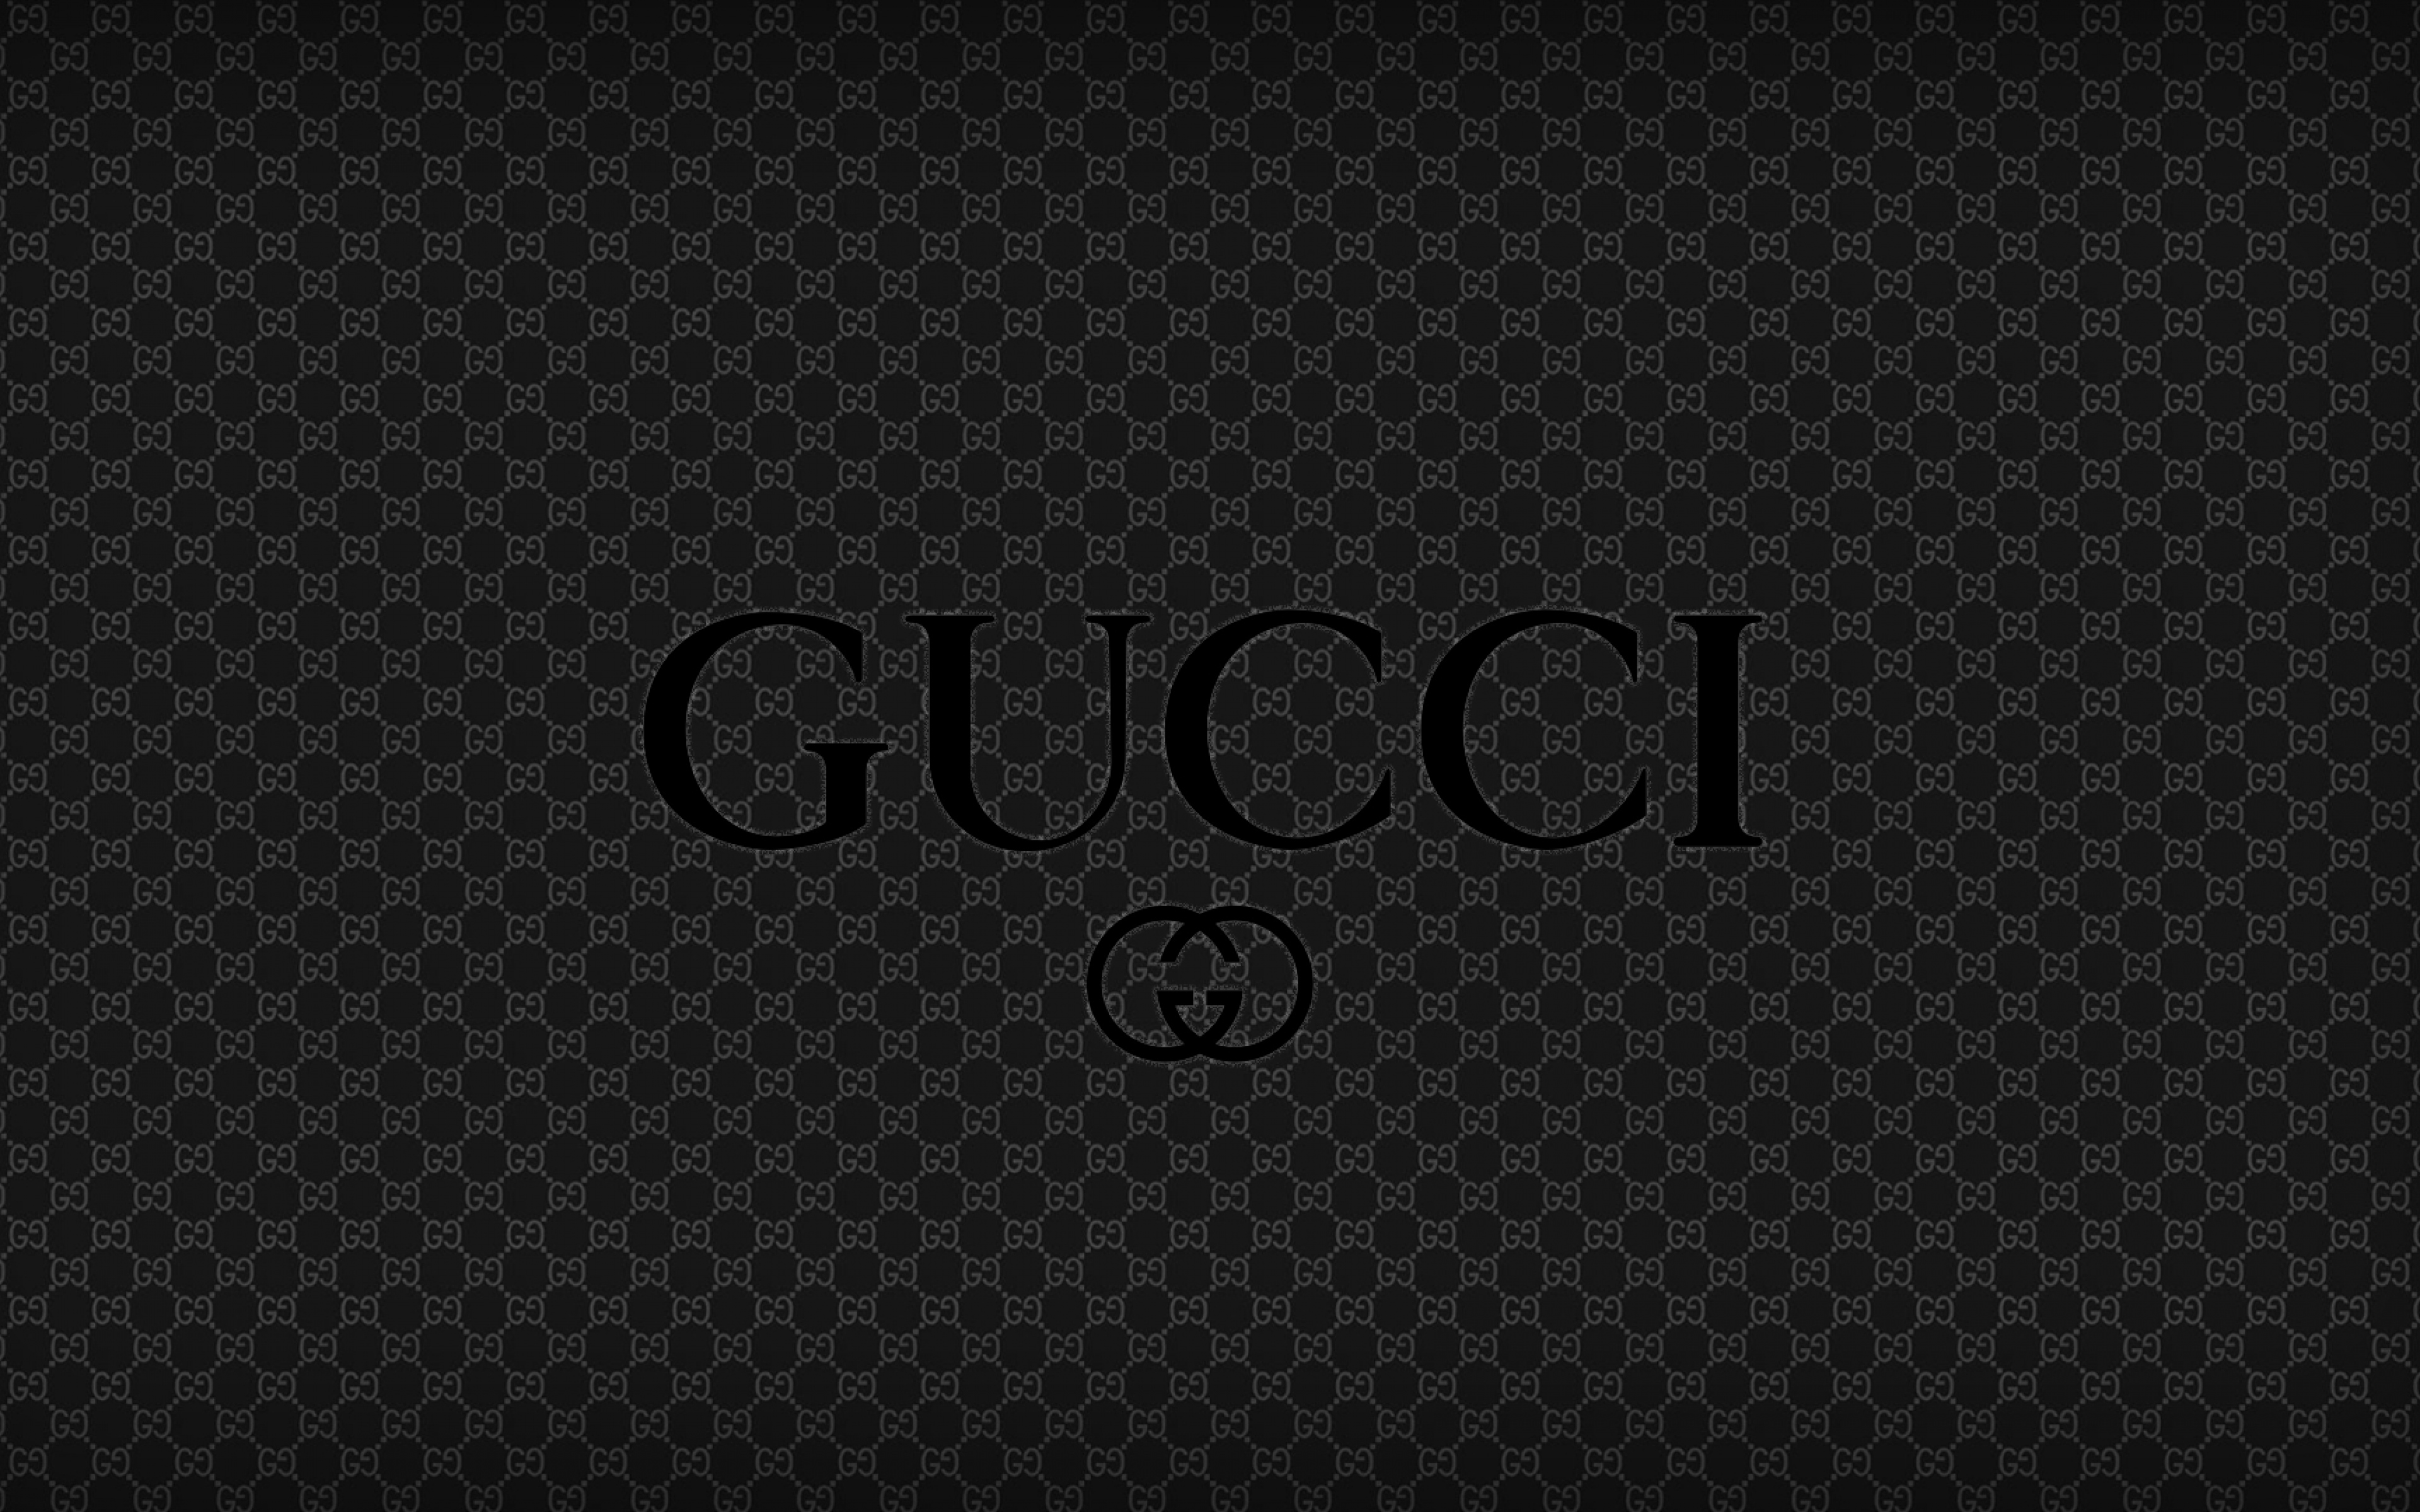 Gucci Wallpapers and Background Images   stmednet 3840x2400